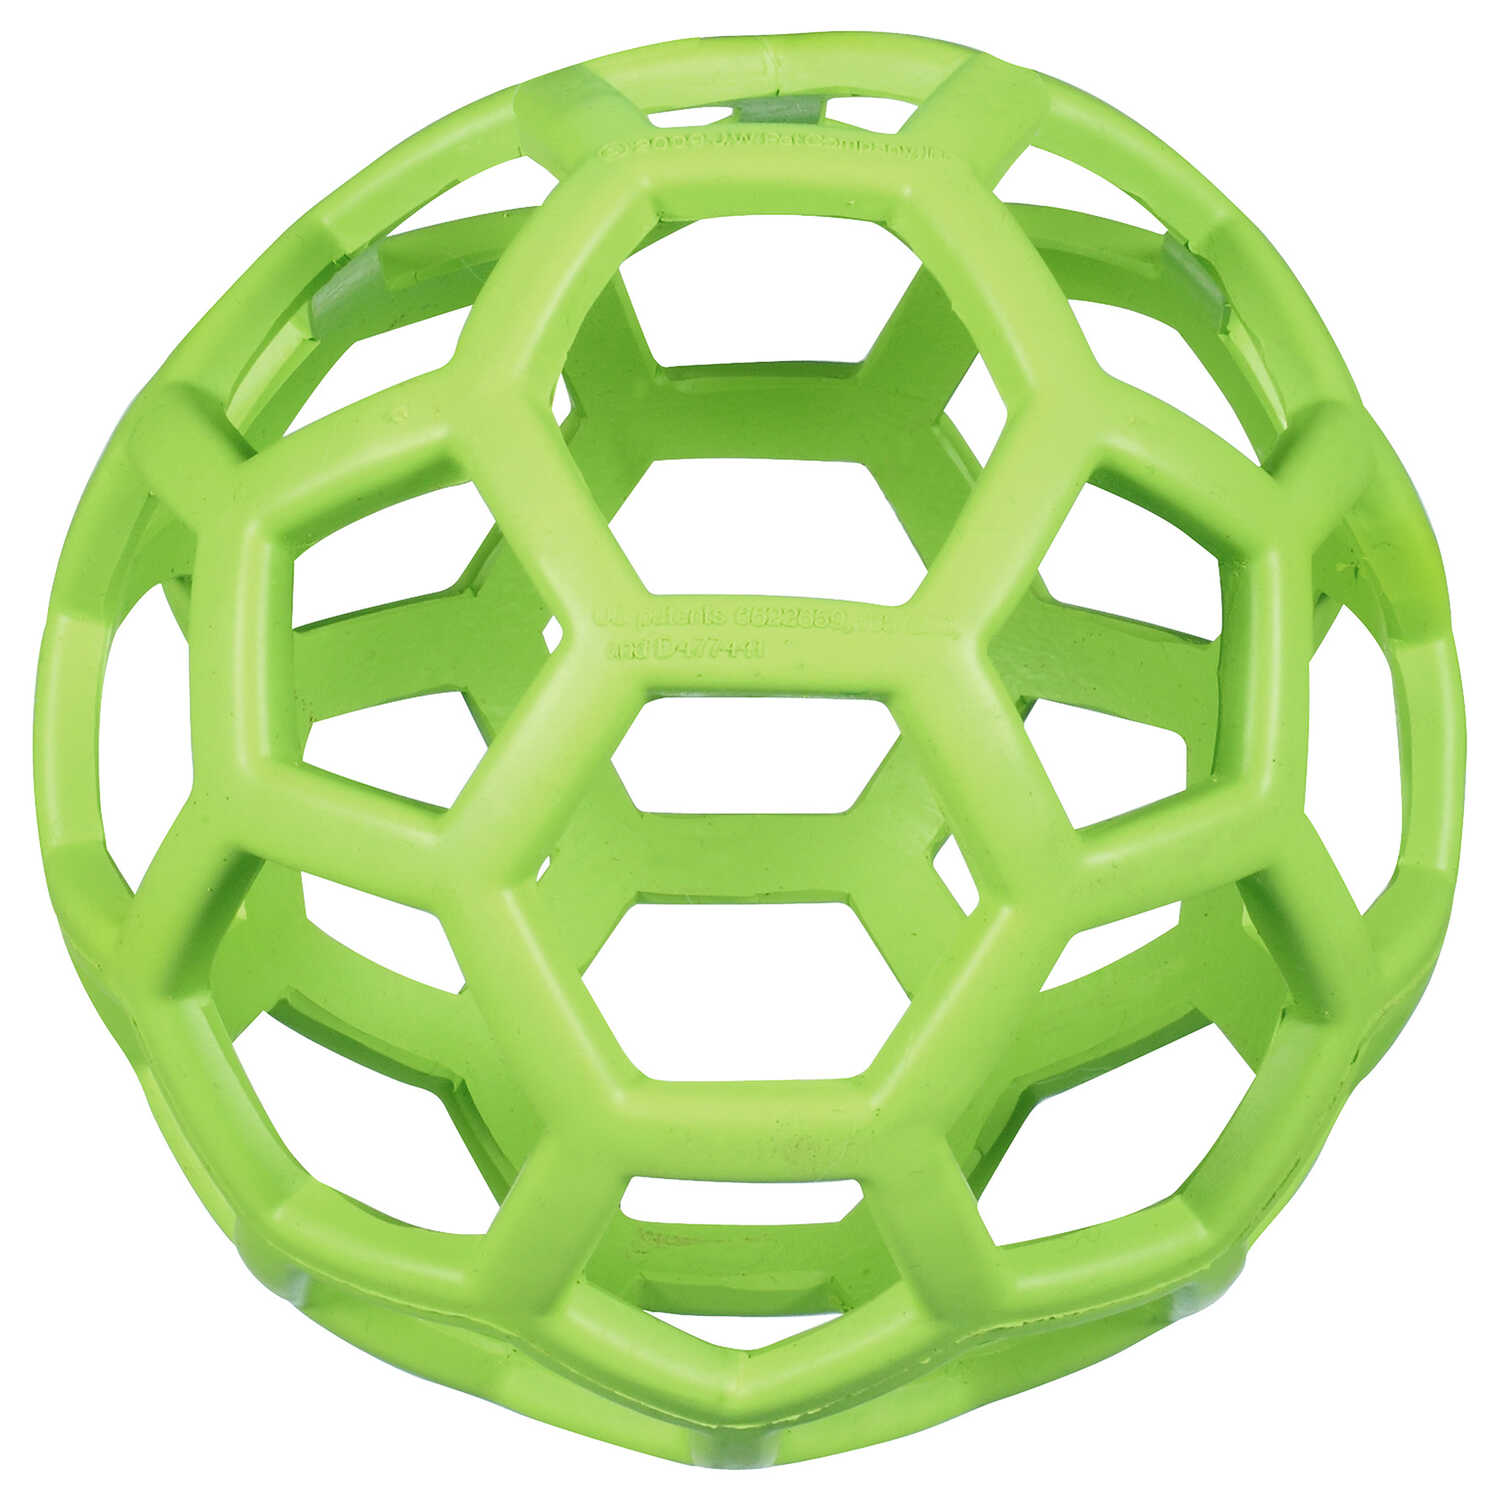 JW Pet  Green  Hol-ee Roller Ball  Treat Holding Toy  Rubber  Large